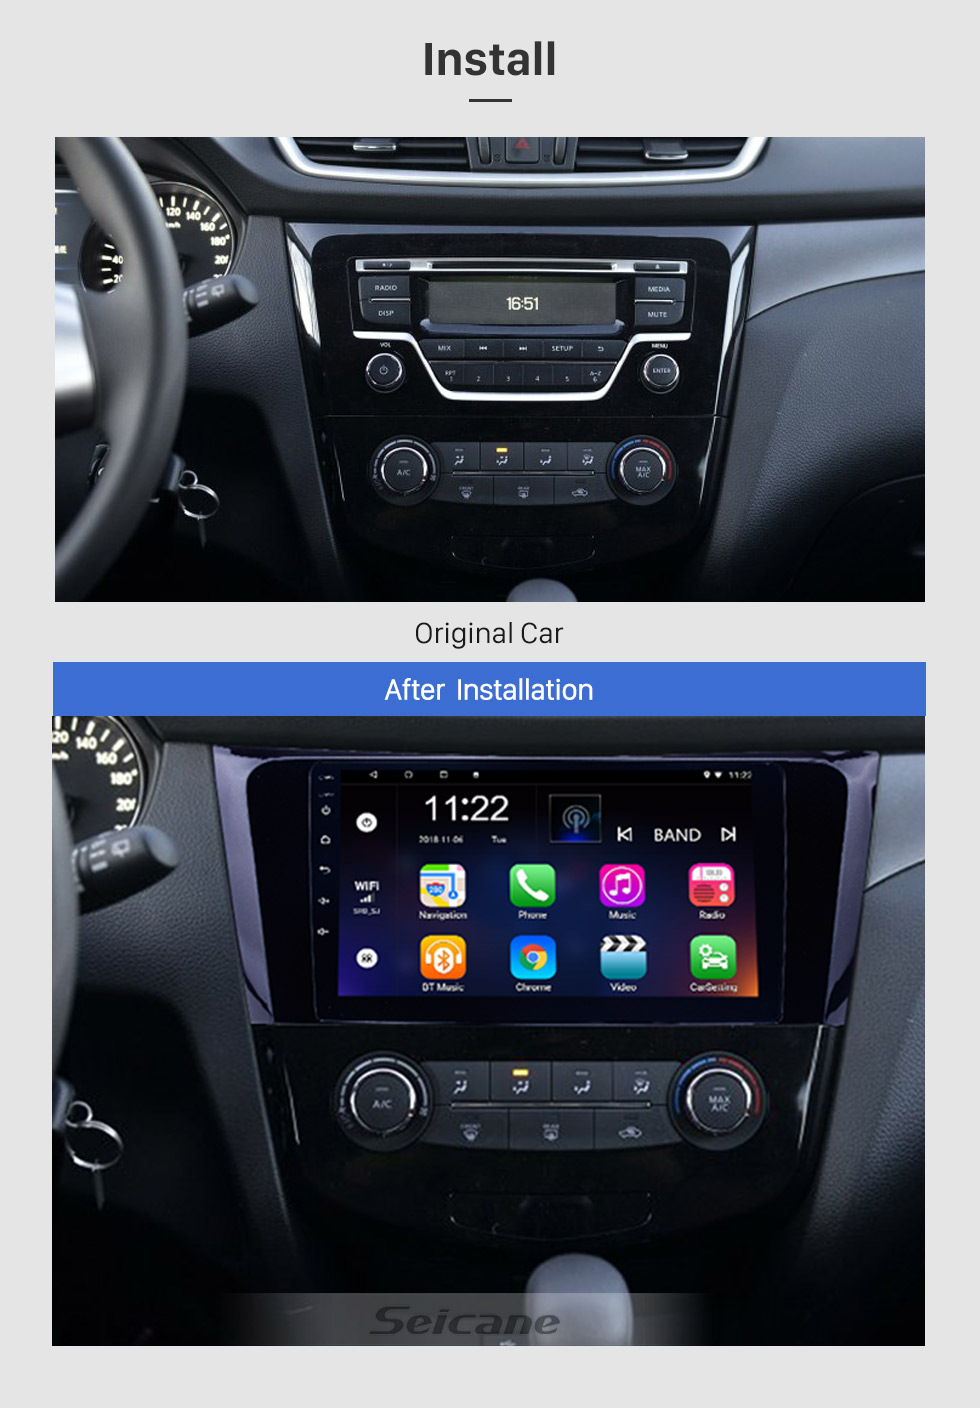 Seicane 9 inch Android 8.1 GPS Radio Bluetooth Multimedia Navigation System for 2013 2014 Nissan X-Trail with 3G WiFi Mirror Link Touch Screen OBD2 Steering Wheel Control Auto A/V USB SD